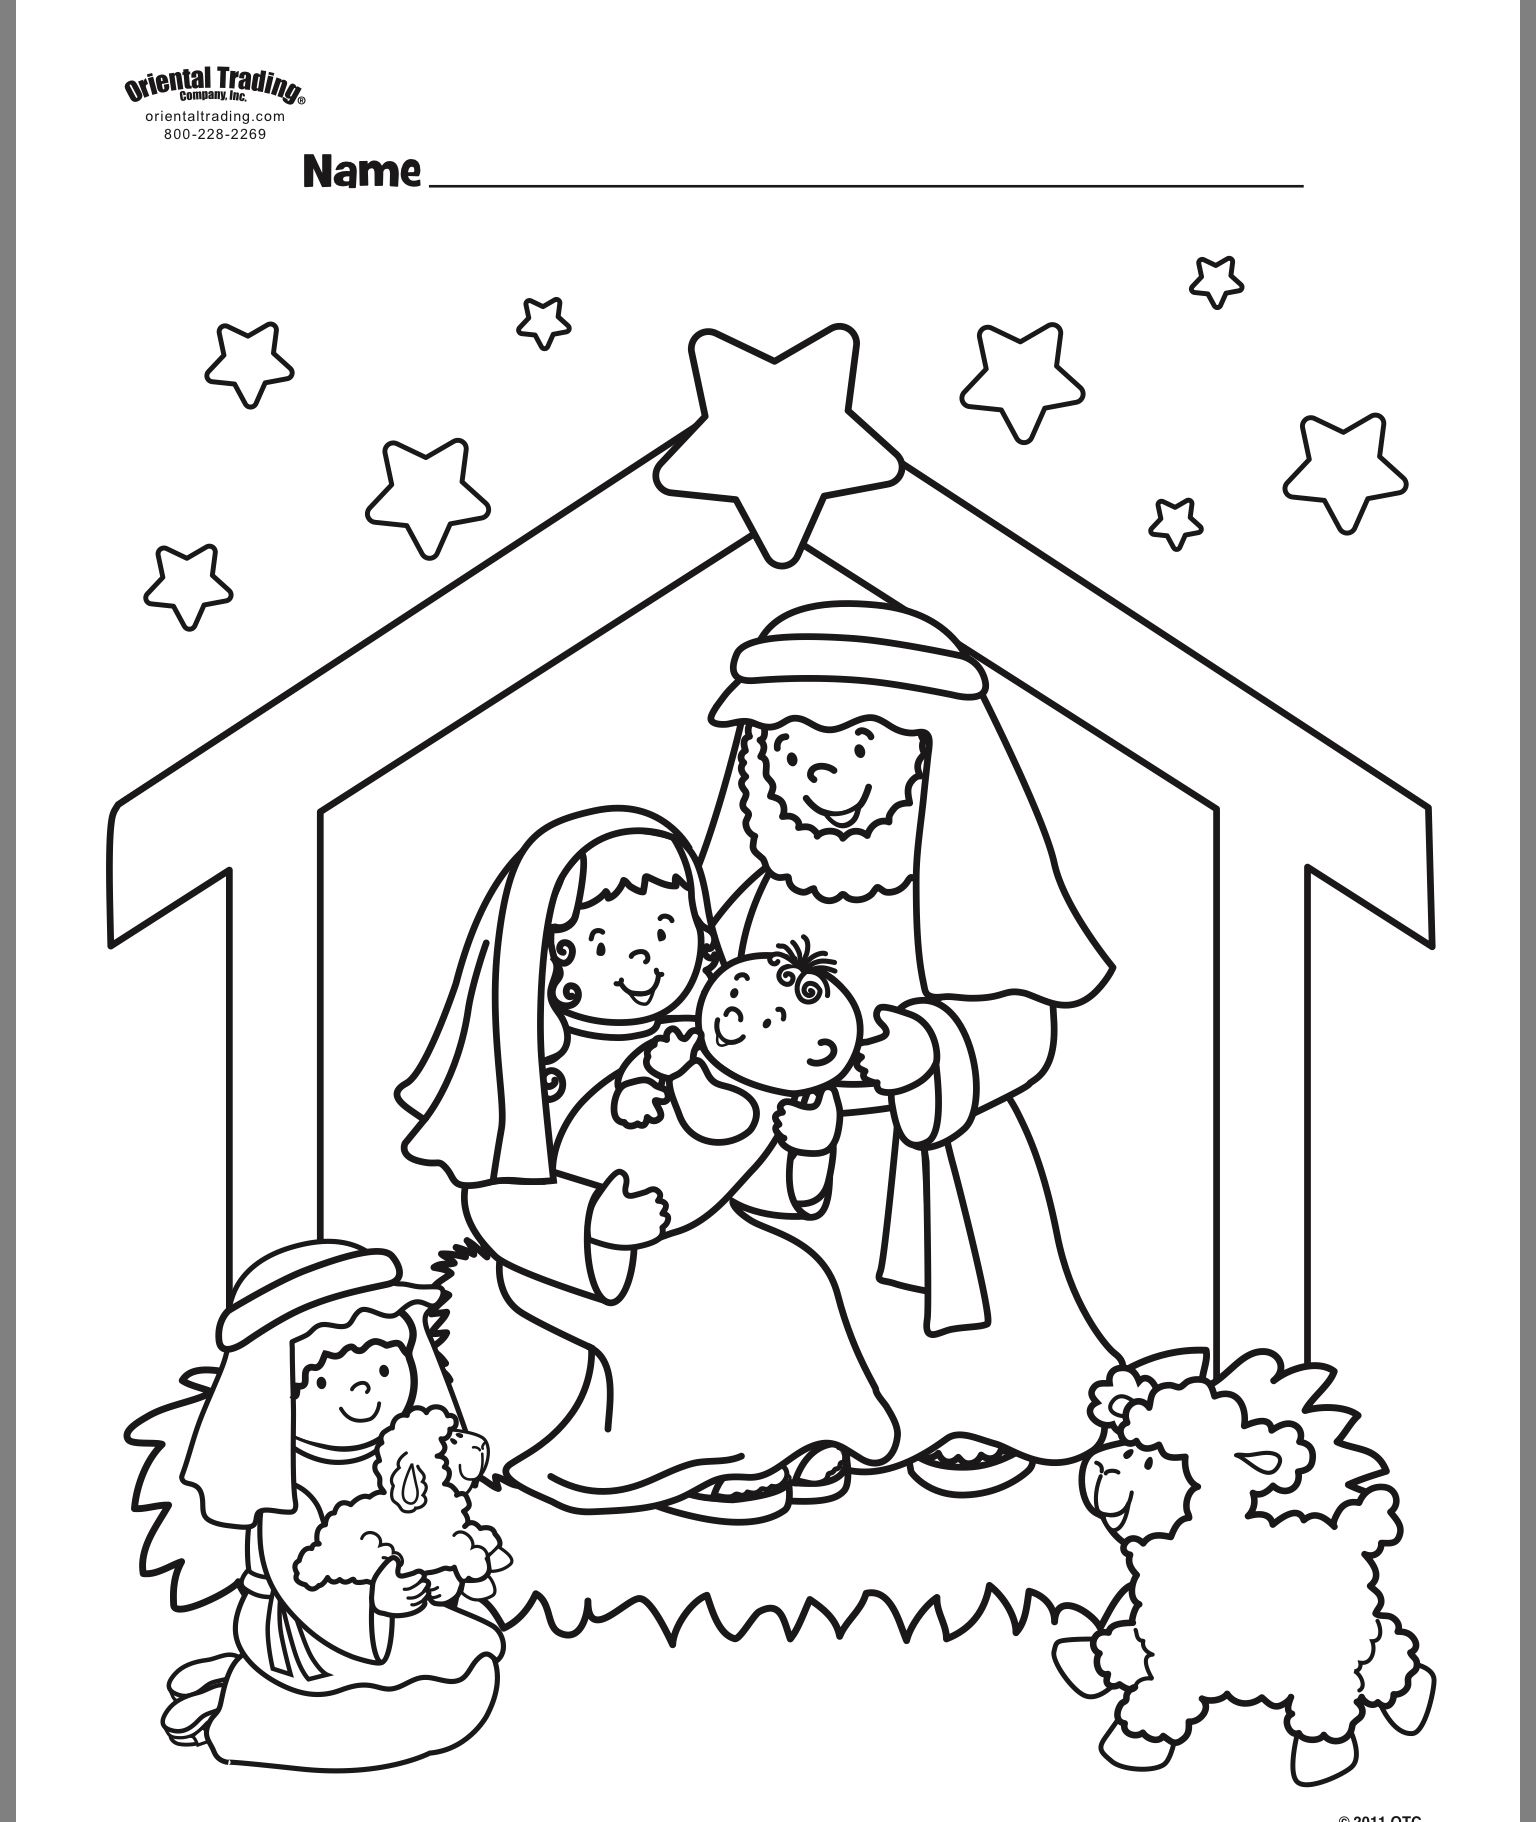 Pin By Gail Liedl On Coloring Pages Nativity Coloring Pages Christmas Coloring Pages Free Christmas Coloring Pages